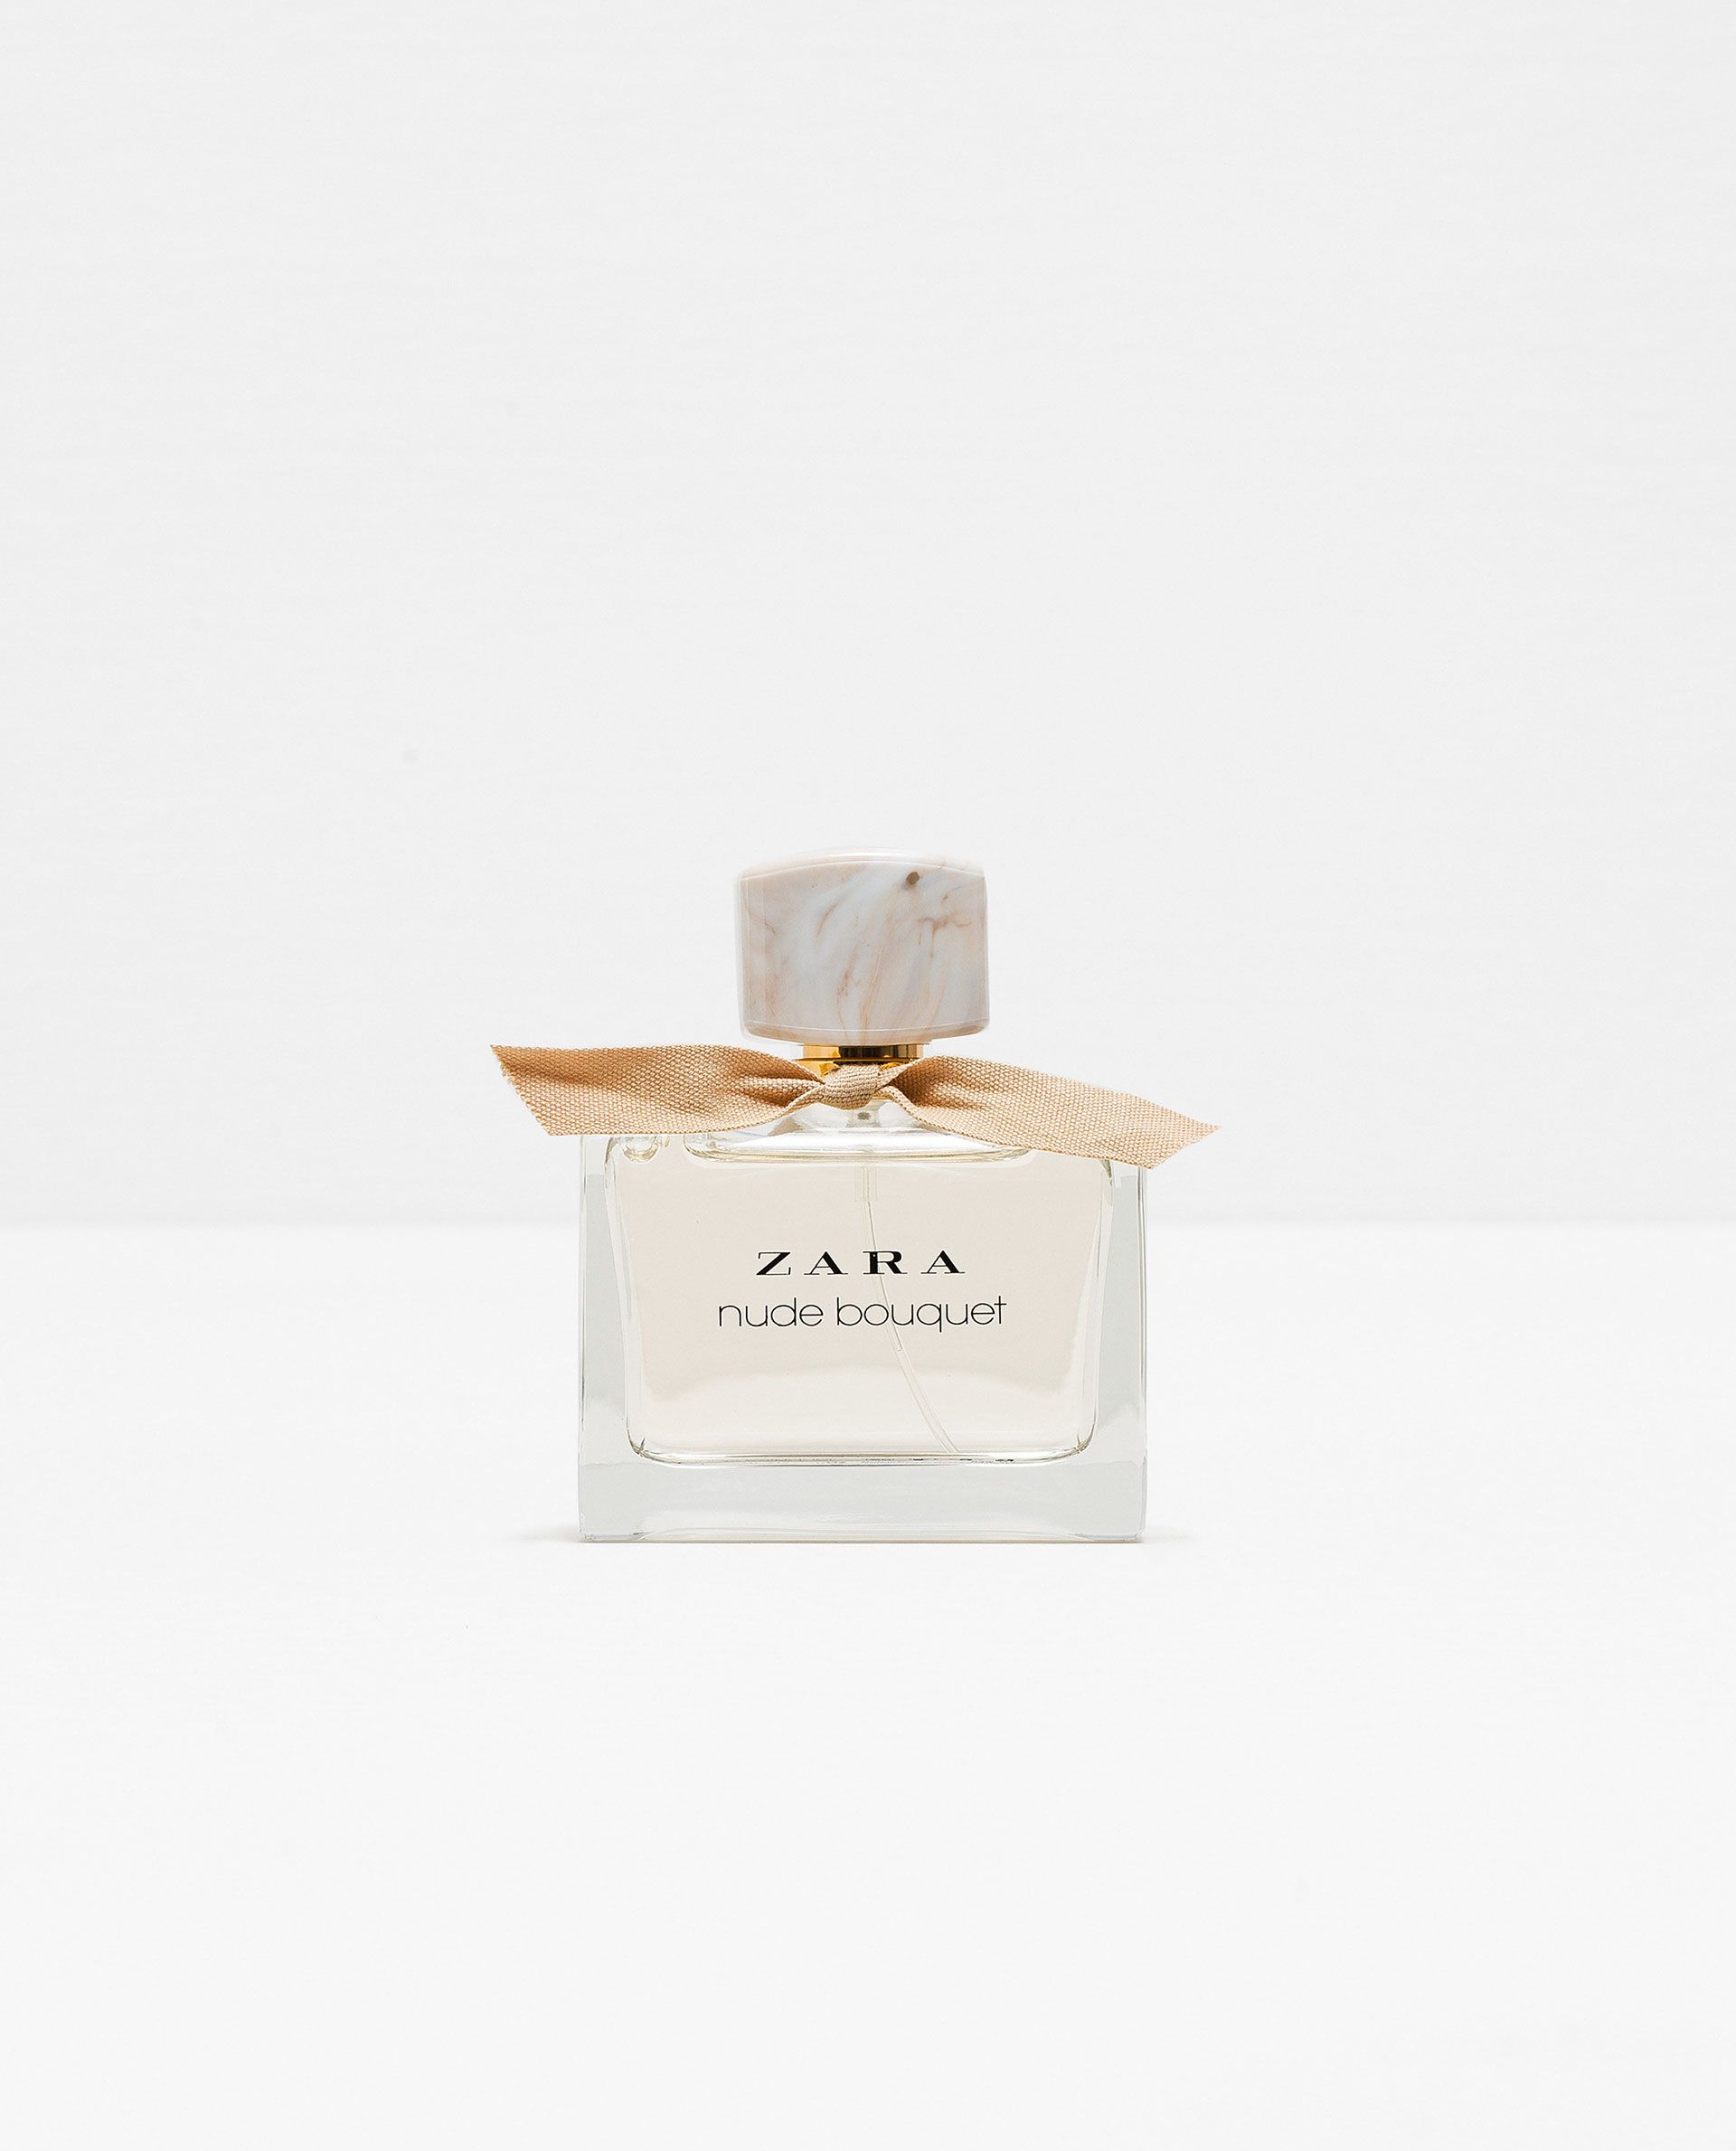 Zara Nude Bouquet Eau De Parfum 100 Ml Beauty Products In 2019